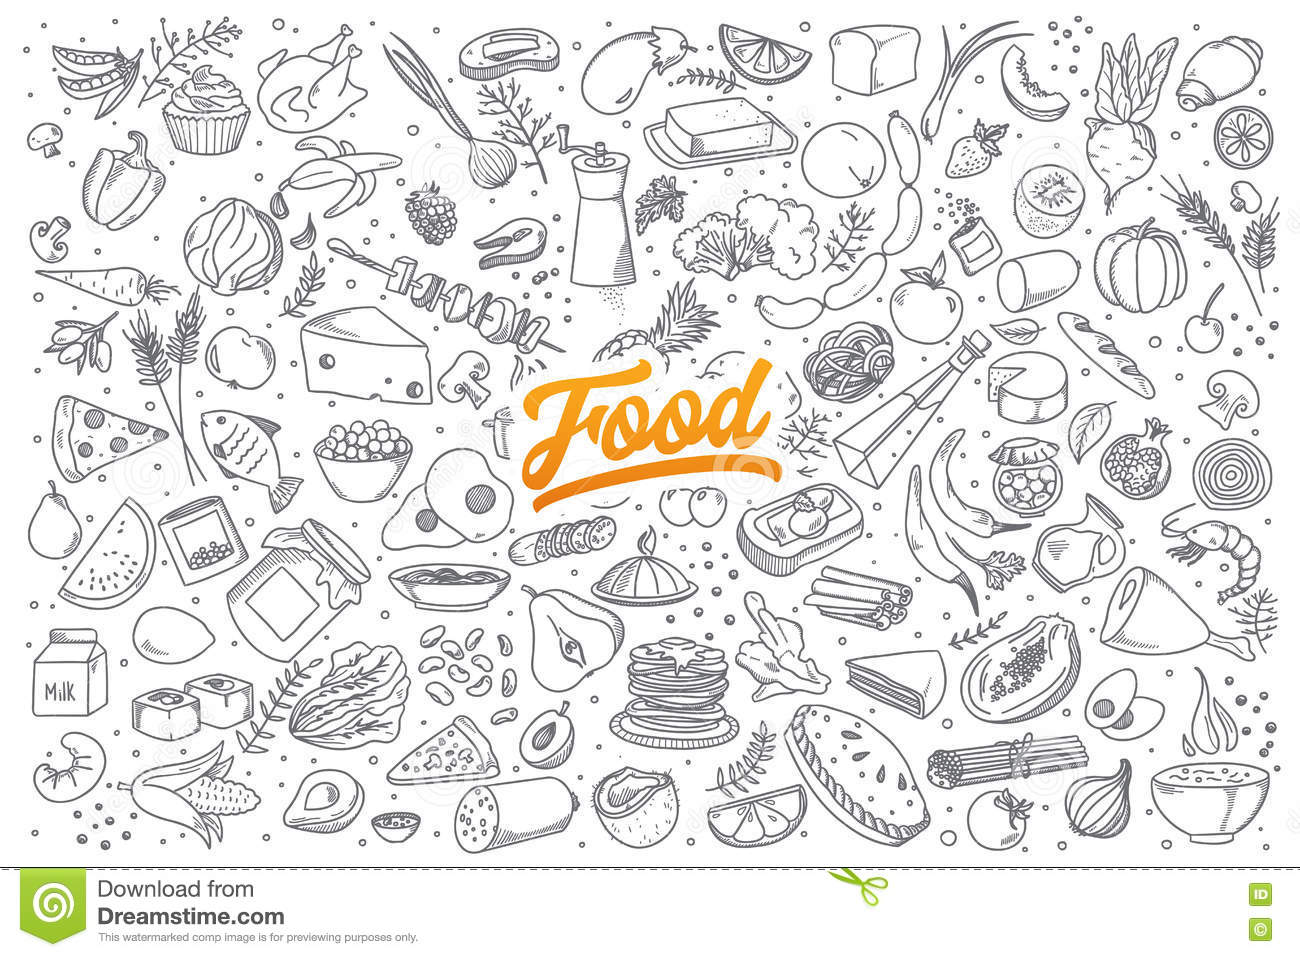 Food Doodle Set With Lettering Stock Vector Illustration Of Milk